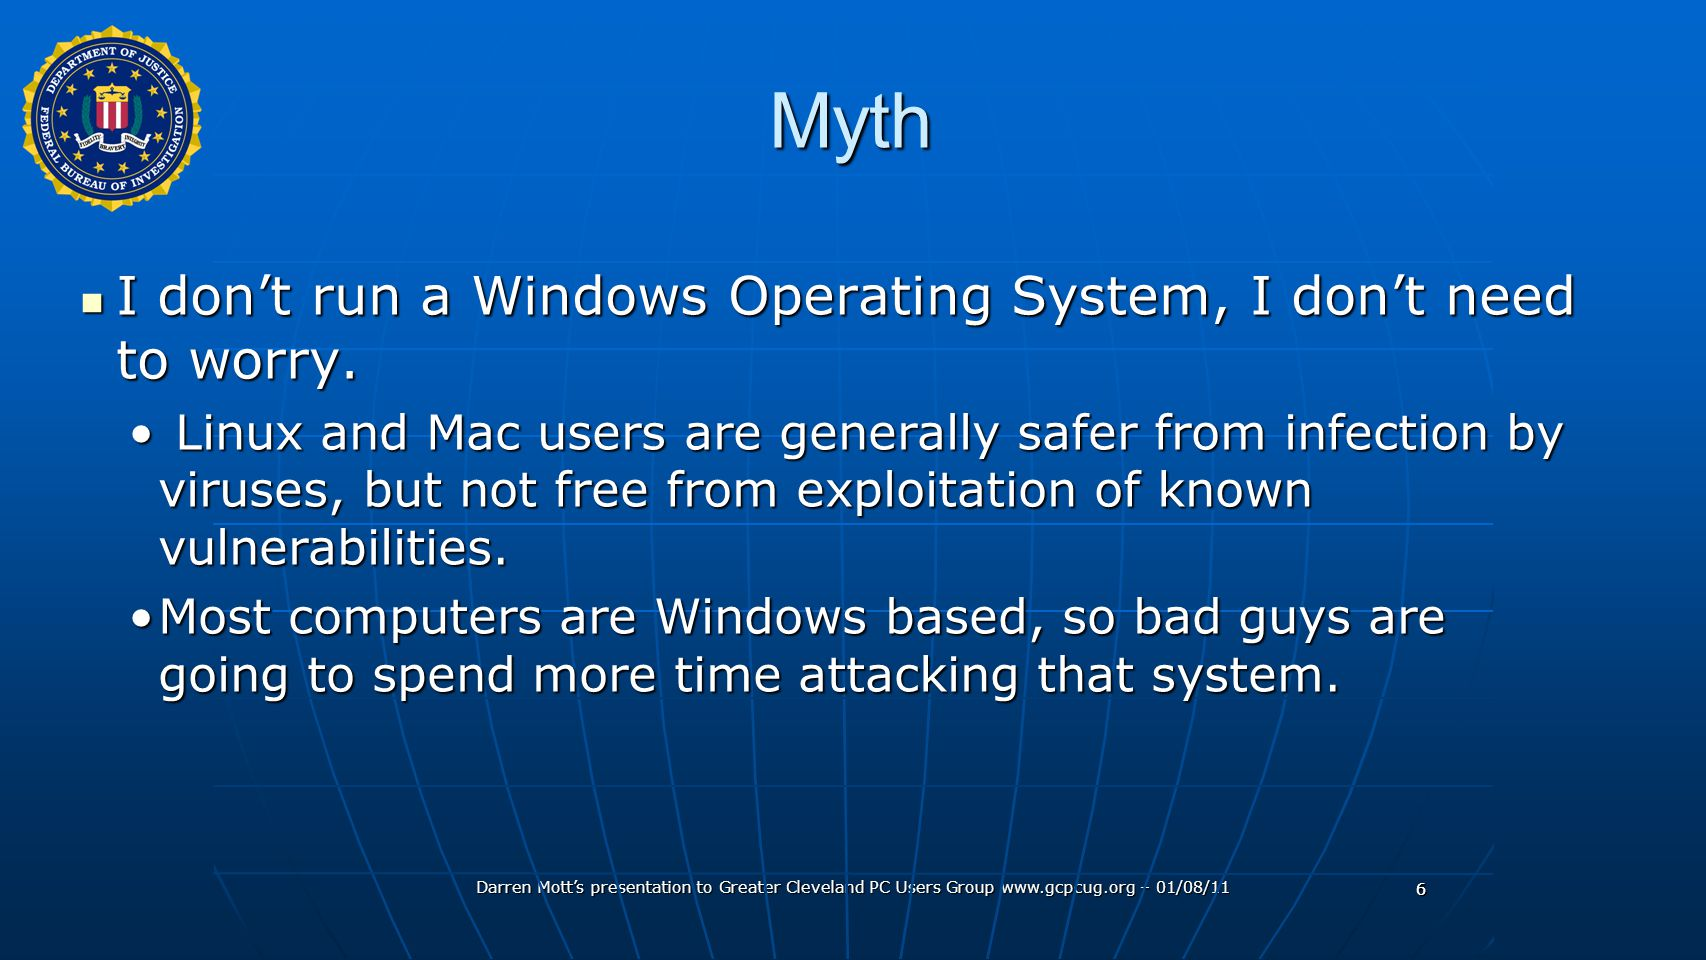 Darren Mott's presentation to Greater Cleveland PC Users Group www.gcpcug.org – 01/08/11 6Myth I don't run a Windows Operating System, I don't need to worry.